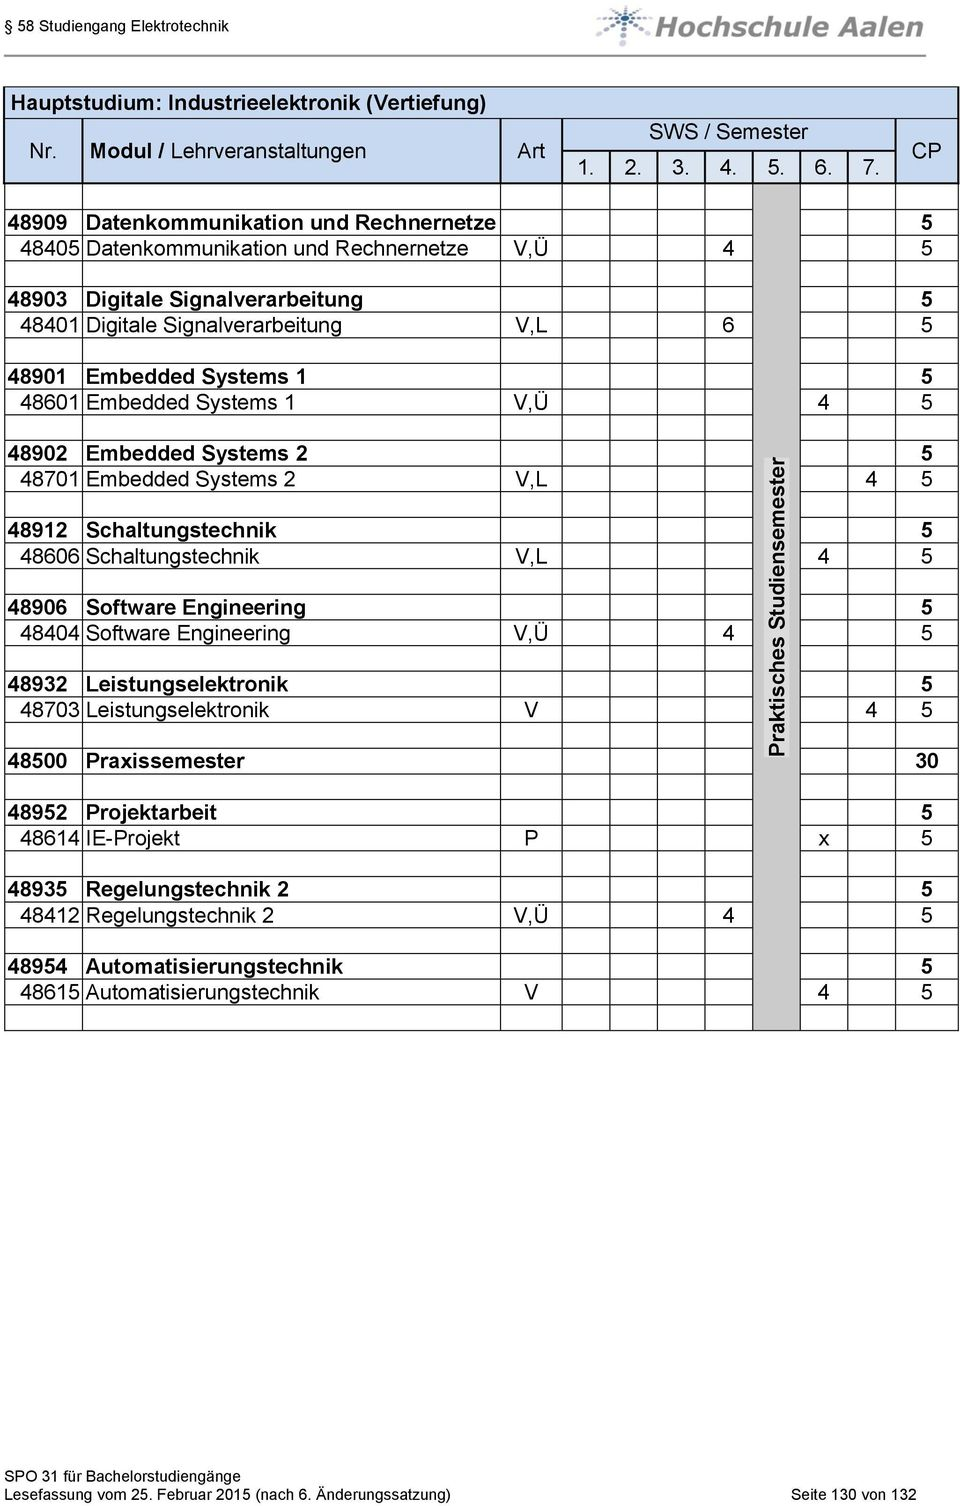 Schaltungstechnik 48606 Schaltungstechnik V,L 4 48906 Software Engineering 48404 Software Engineering V,Ü 4 48932 Leistungselektronik 48703 Leistungselektronik V 4 4800 Praxissemester 30 4892